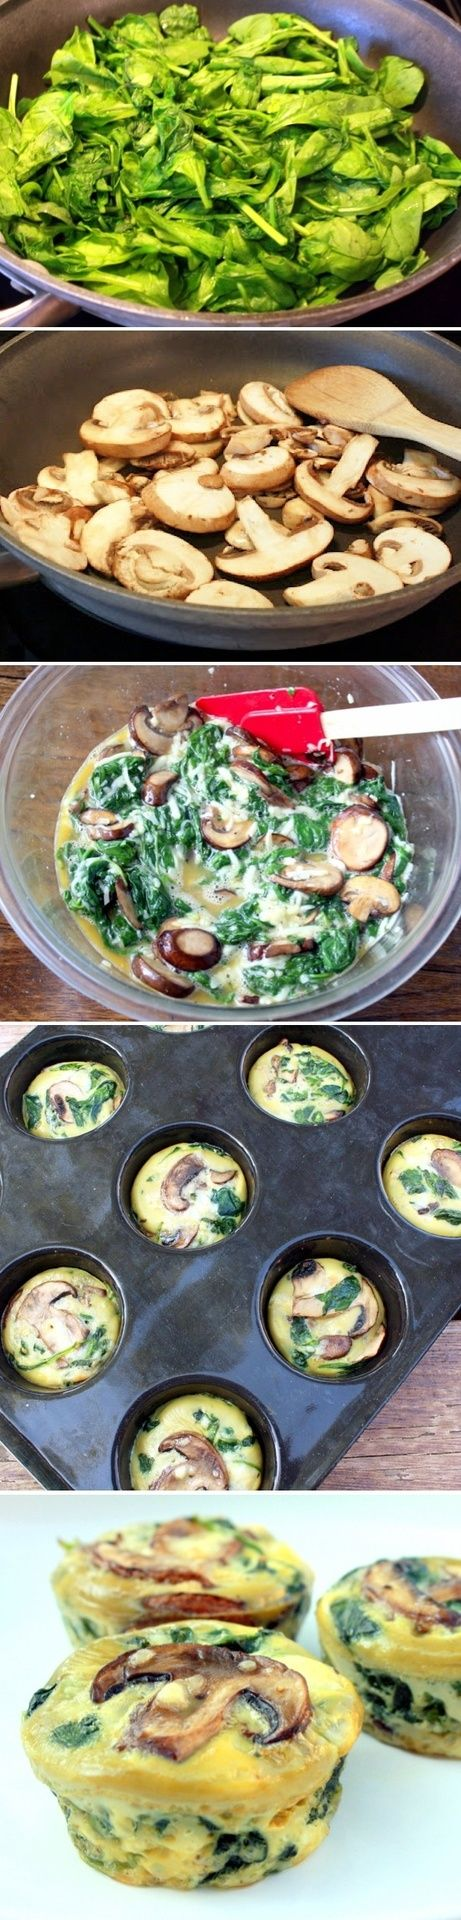 Spinach Quiche Cups by yummyfooddrink: Breakfast-on-the-go for the week! #Quiche #Spinach i am making this right NOW.  looks so healthy.  my own organic kale, mushrooms and homegrown egg!